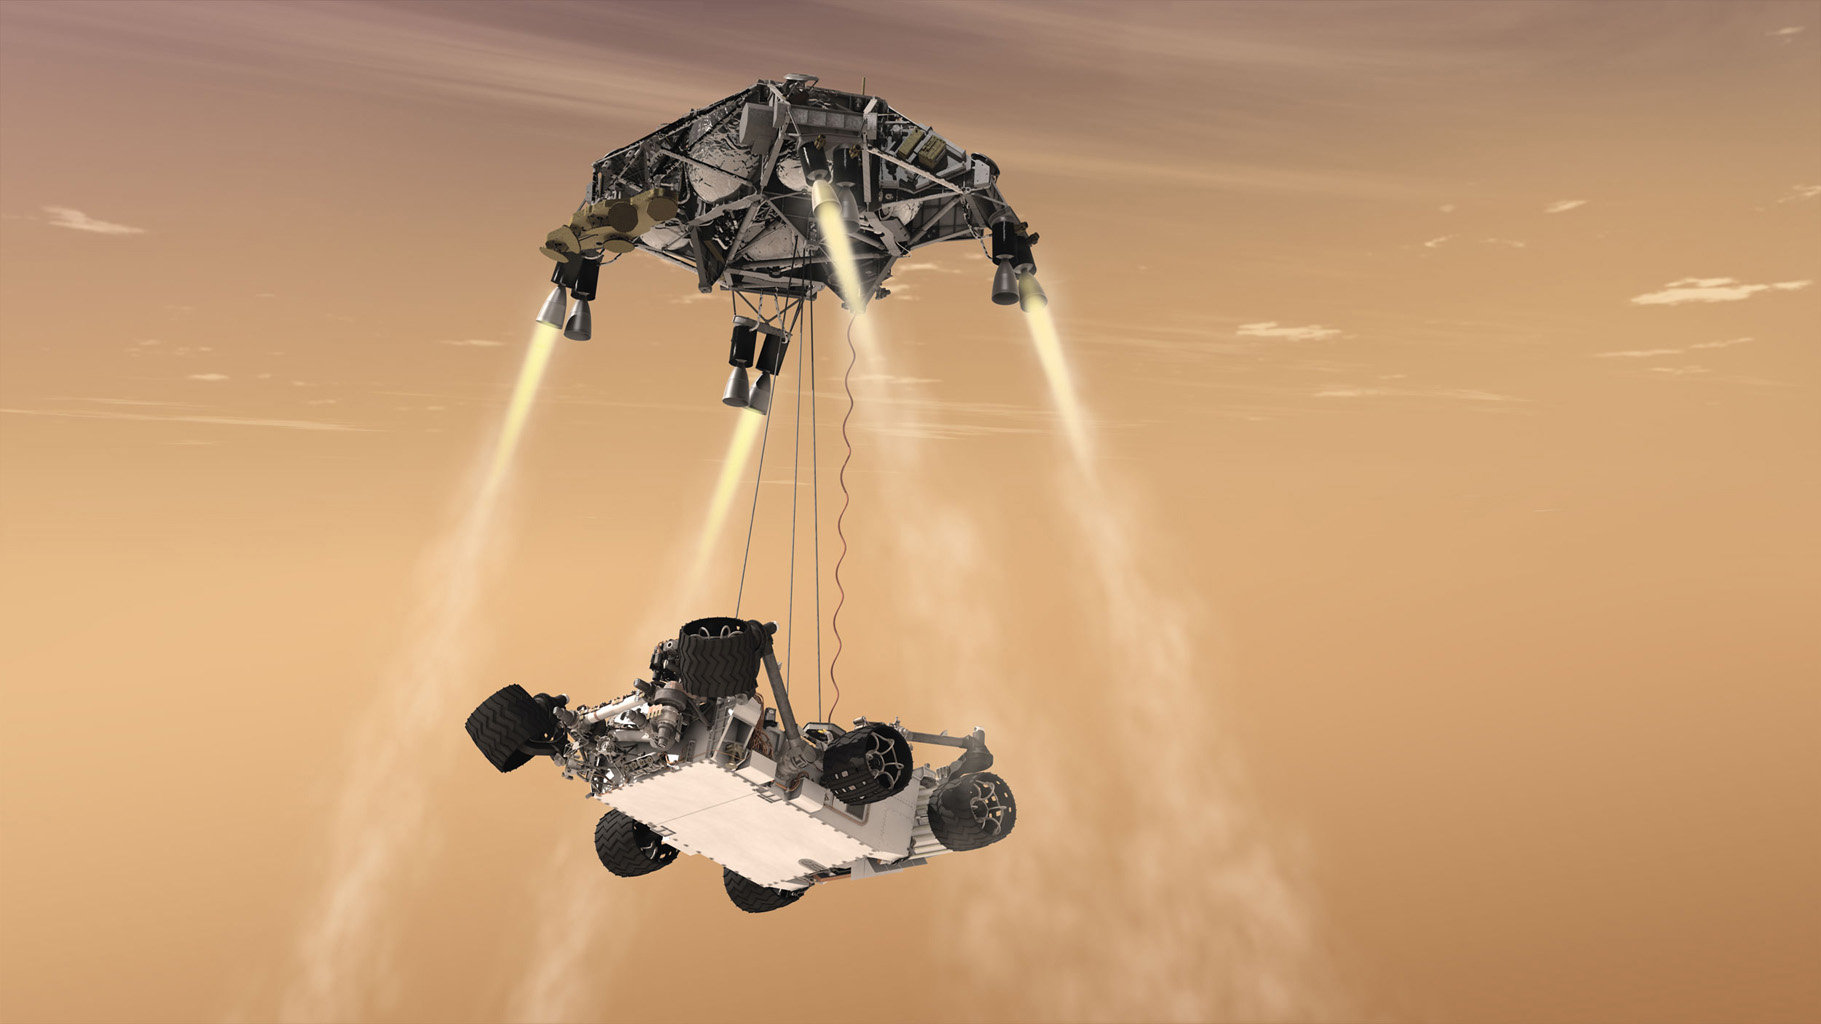 This artist's concept shows the sky crane maneuver during the descent of NASA's Curiosity rover to the Martian surface. The sheer size of the rover (over one ton, or 900 kilograms) would preclude it from taking advantage of an airbag-assisted landing.